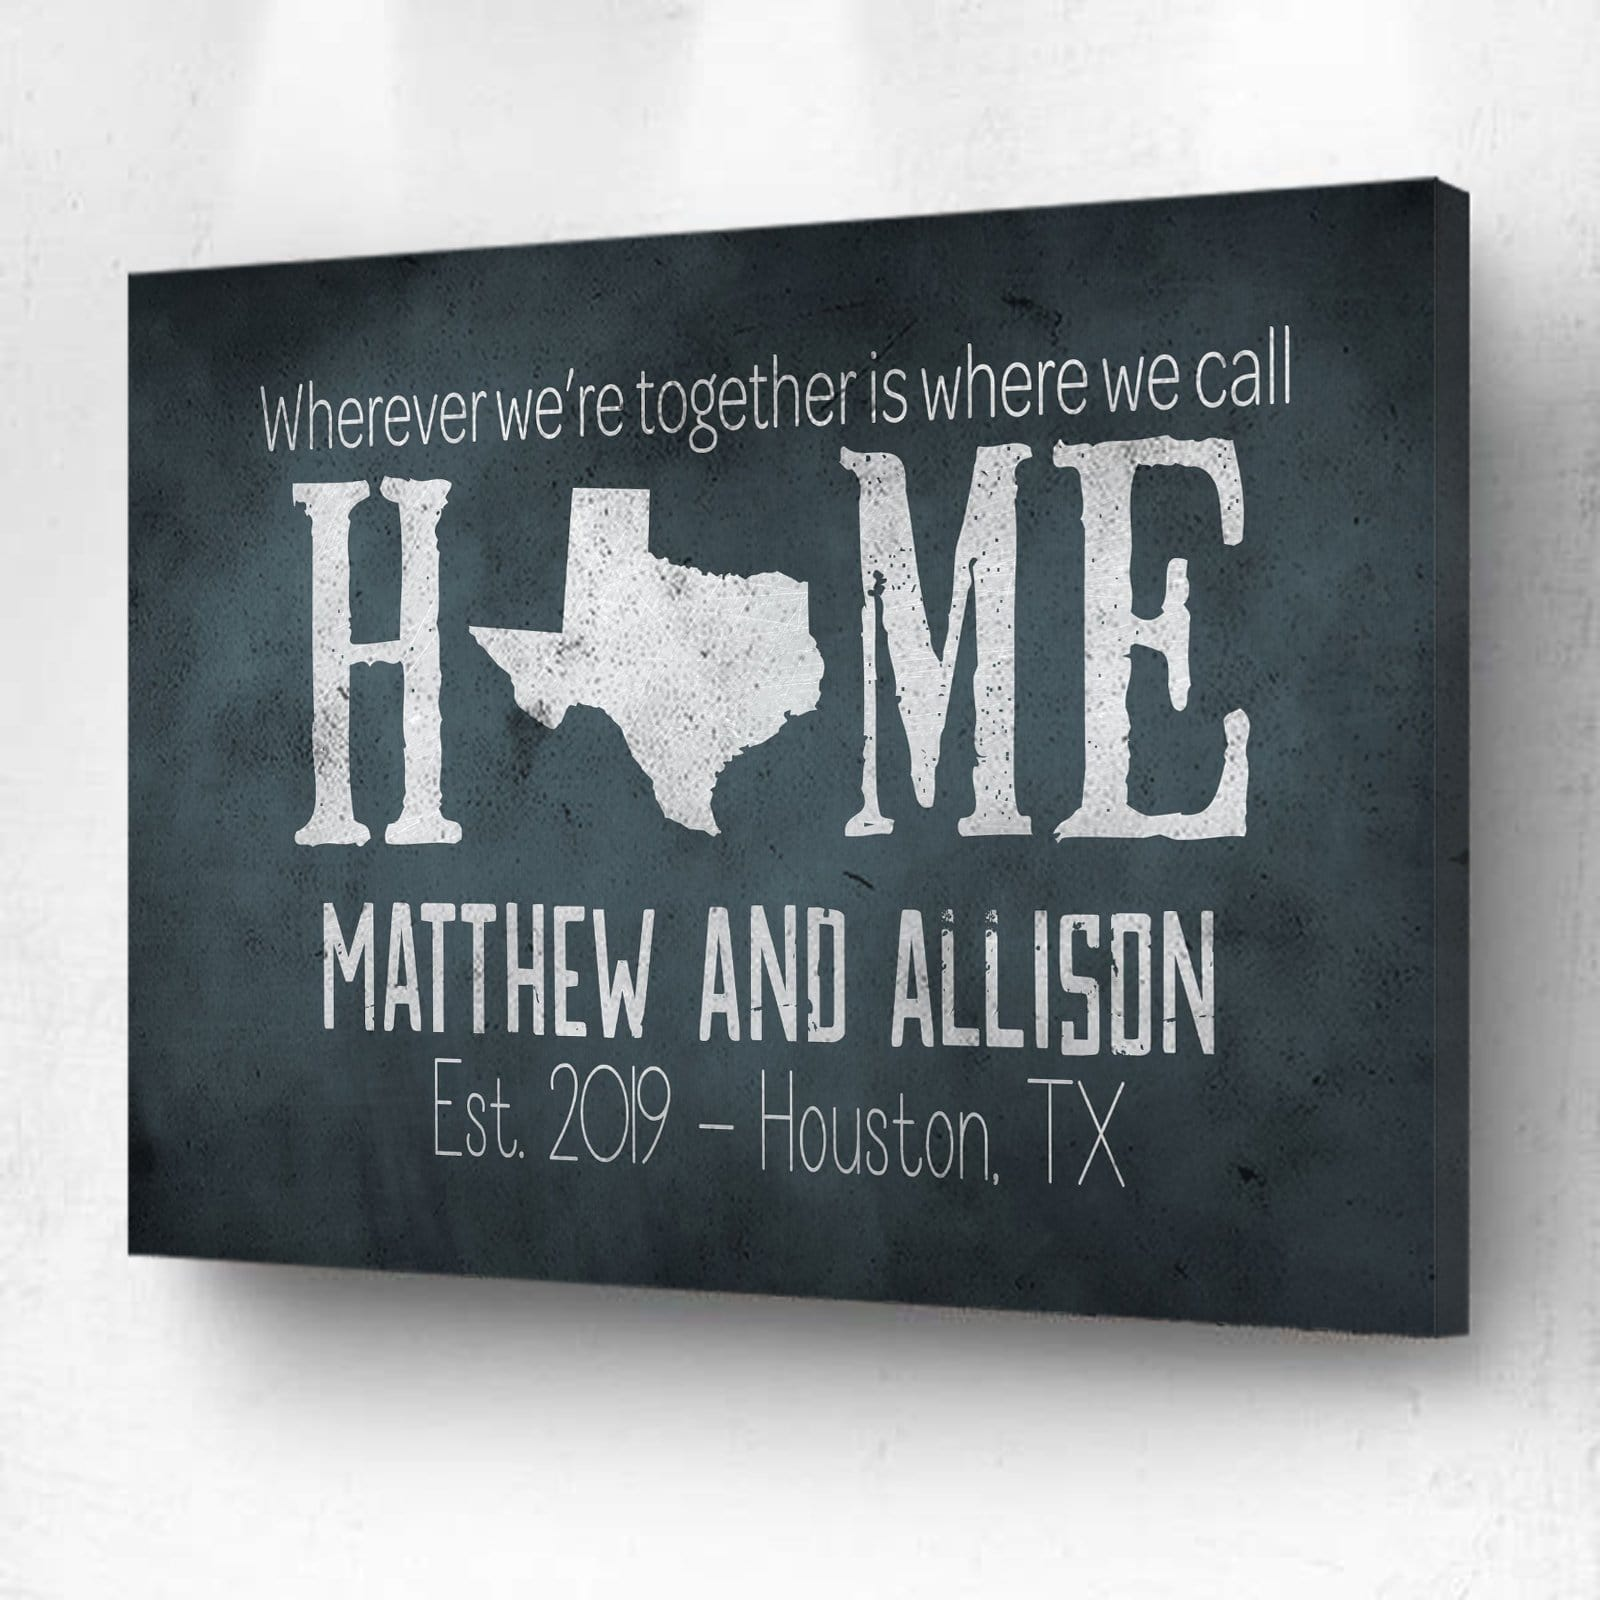 Wherever We're Together Is Where We Call Home Teal - Personalized